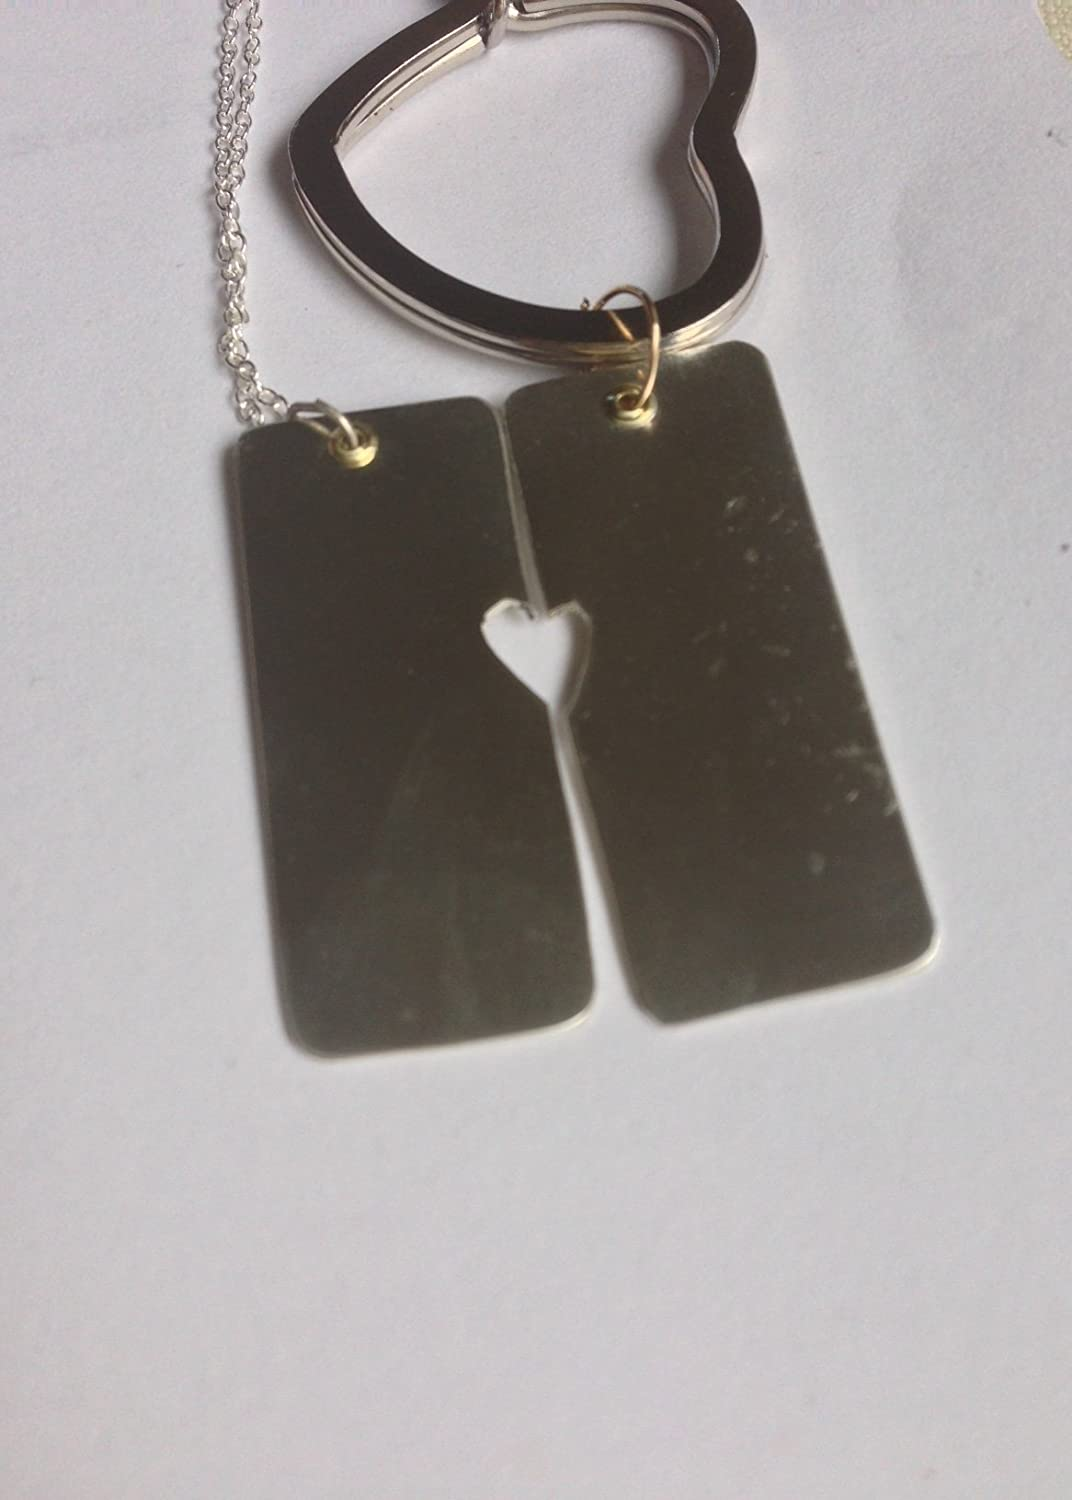 6ddad73edb Matching Couple Necklace with Dog Tag and split heart , Dog Tag Partner  Necklace with heart Charm, Personalized Boyfriend Girlfriend gift sterling  copper ...